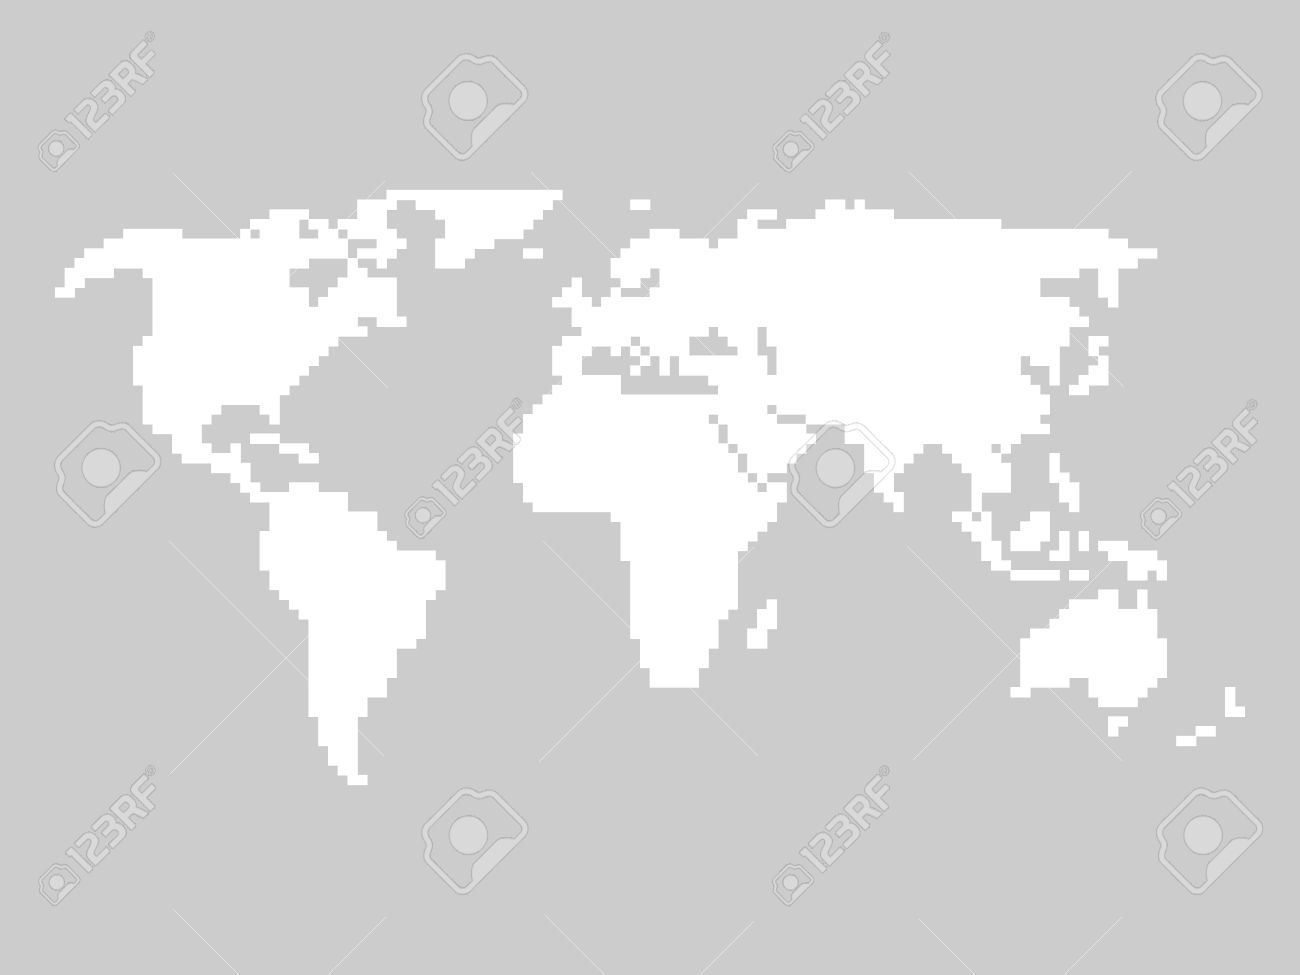 Blank grey abstract world map with shadow template on transparent pixelated world map white illustration on grey background stock vector 53890727 gumiabroncs Images